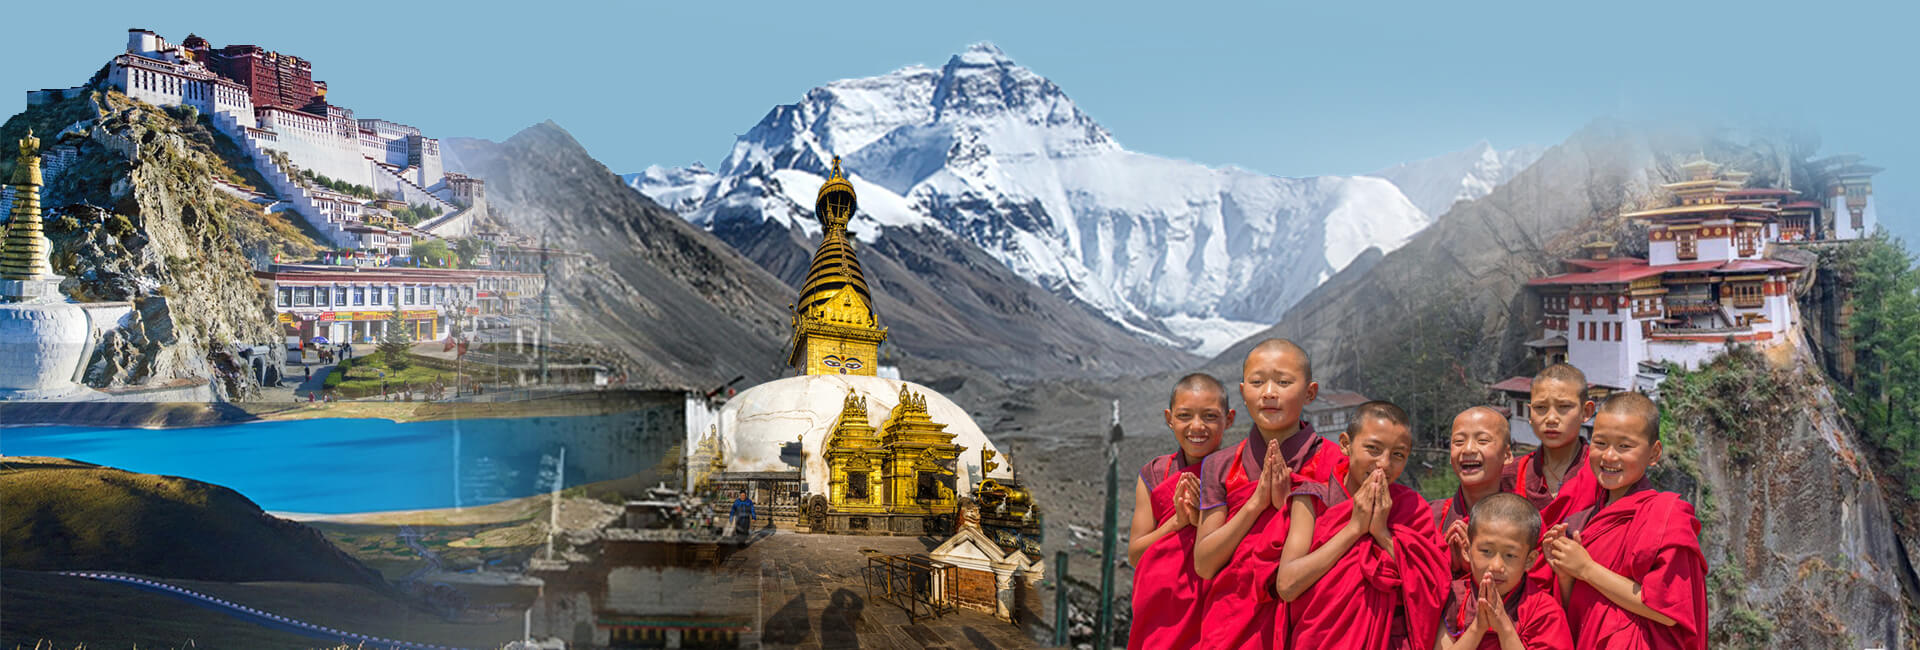 Tour Nepal Banners App Marketing Banners